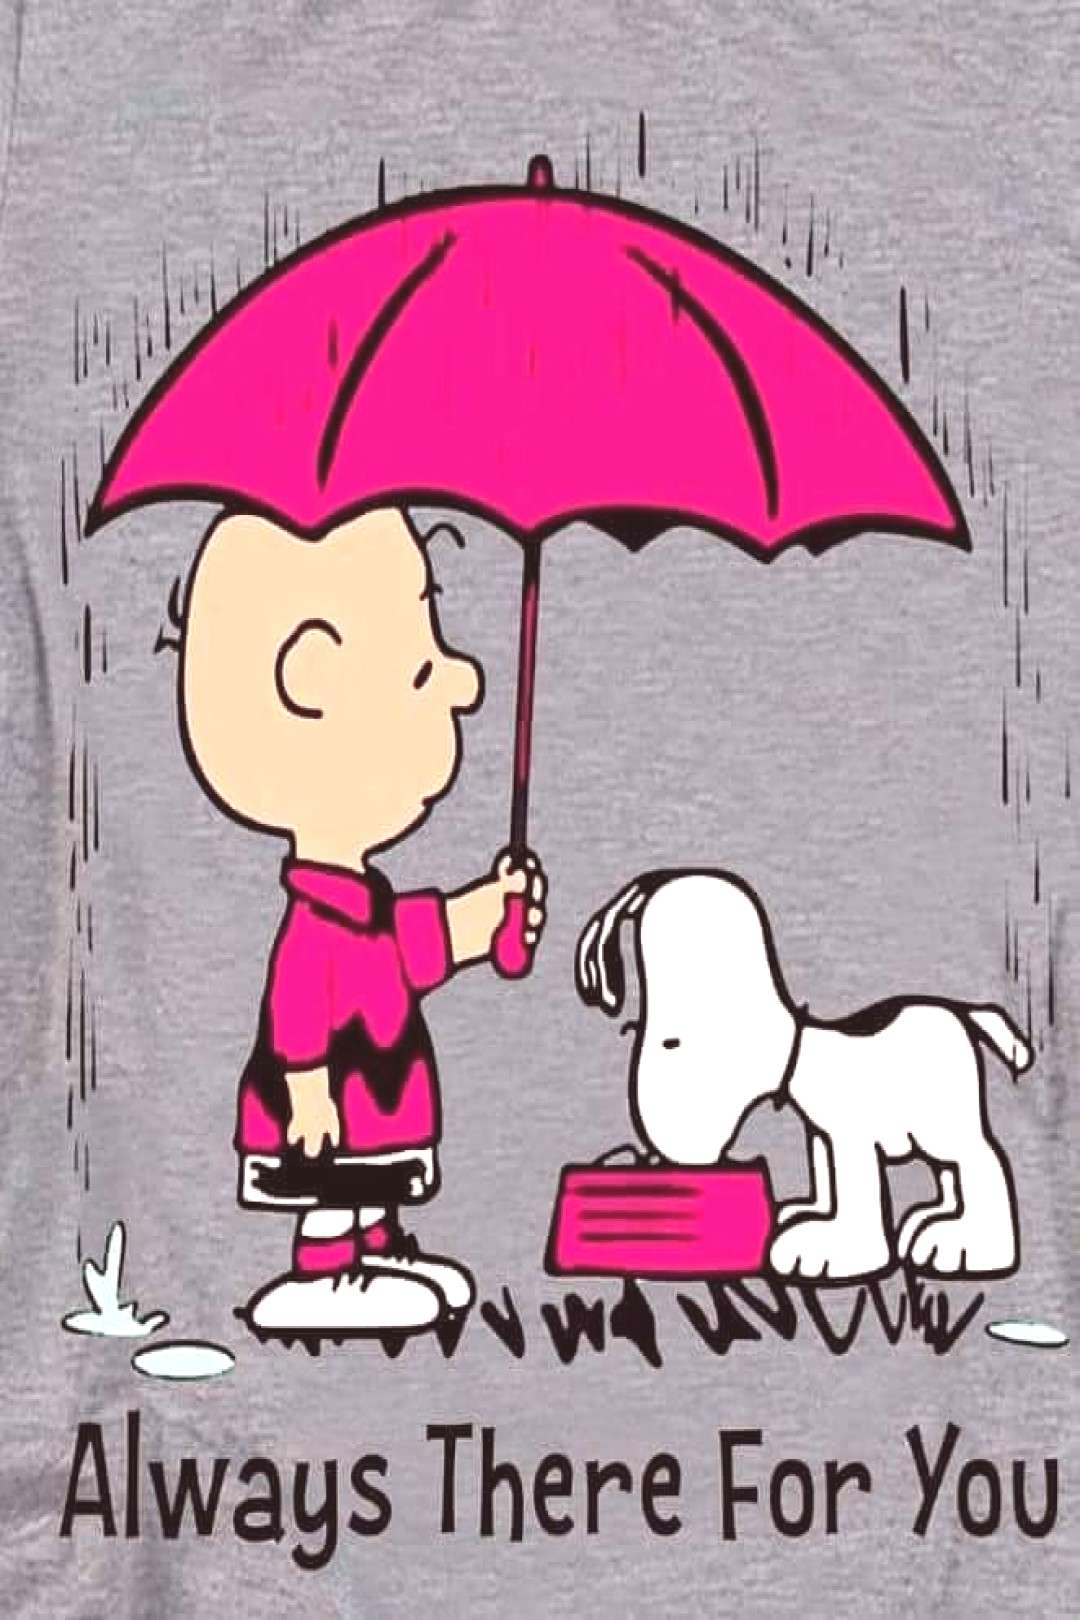 """Snoopy and Charlie Brown on Instagram: """"Always there for you! ? You can count on me ♥️ -"""